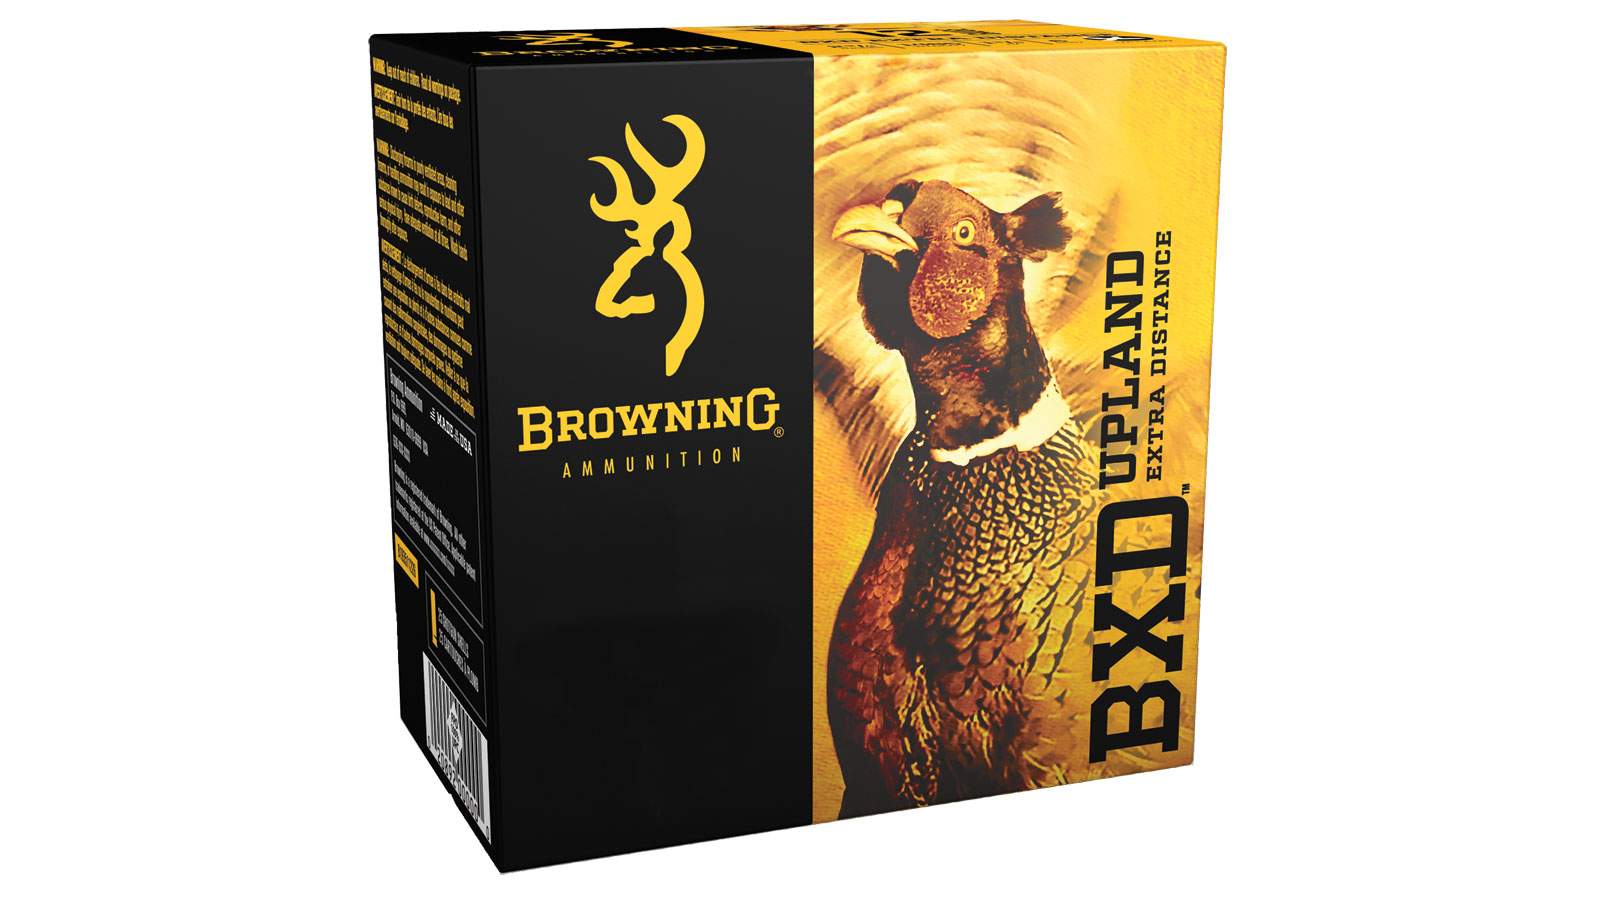 Browning Ammo B193511626 BXD Extra Distance Upland 16 Ga 2.75 1-1|8 oz 6 Shot 25 Bx| 10 in.